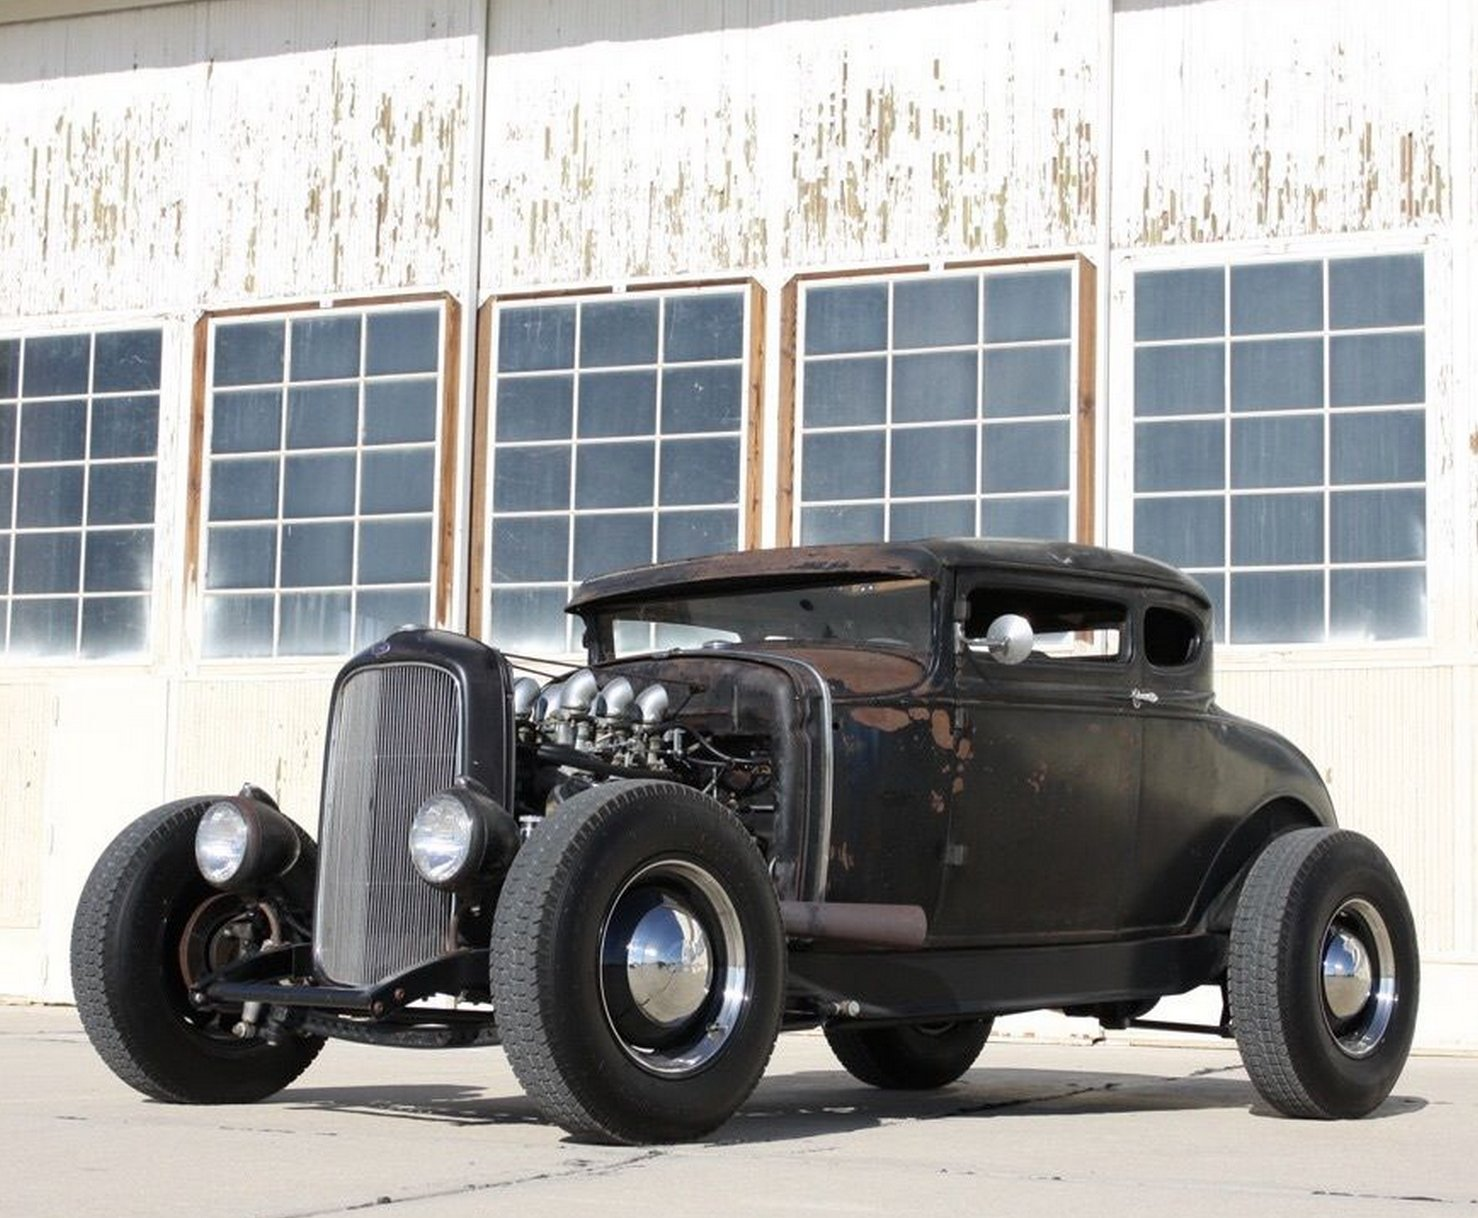 Get a 1930 Ford Model A That's Packing a '54 Hemi